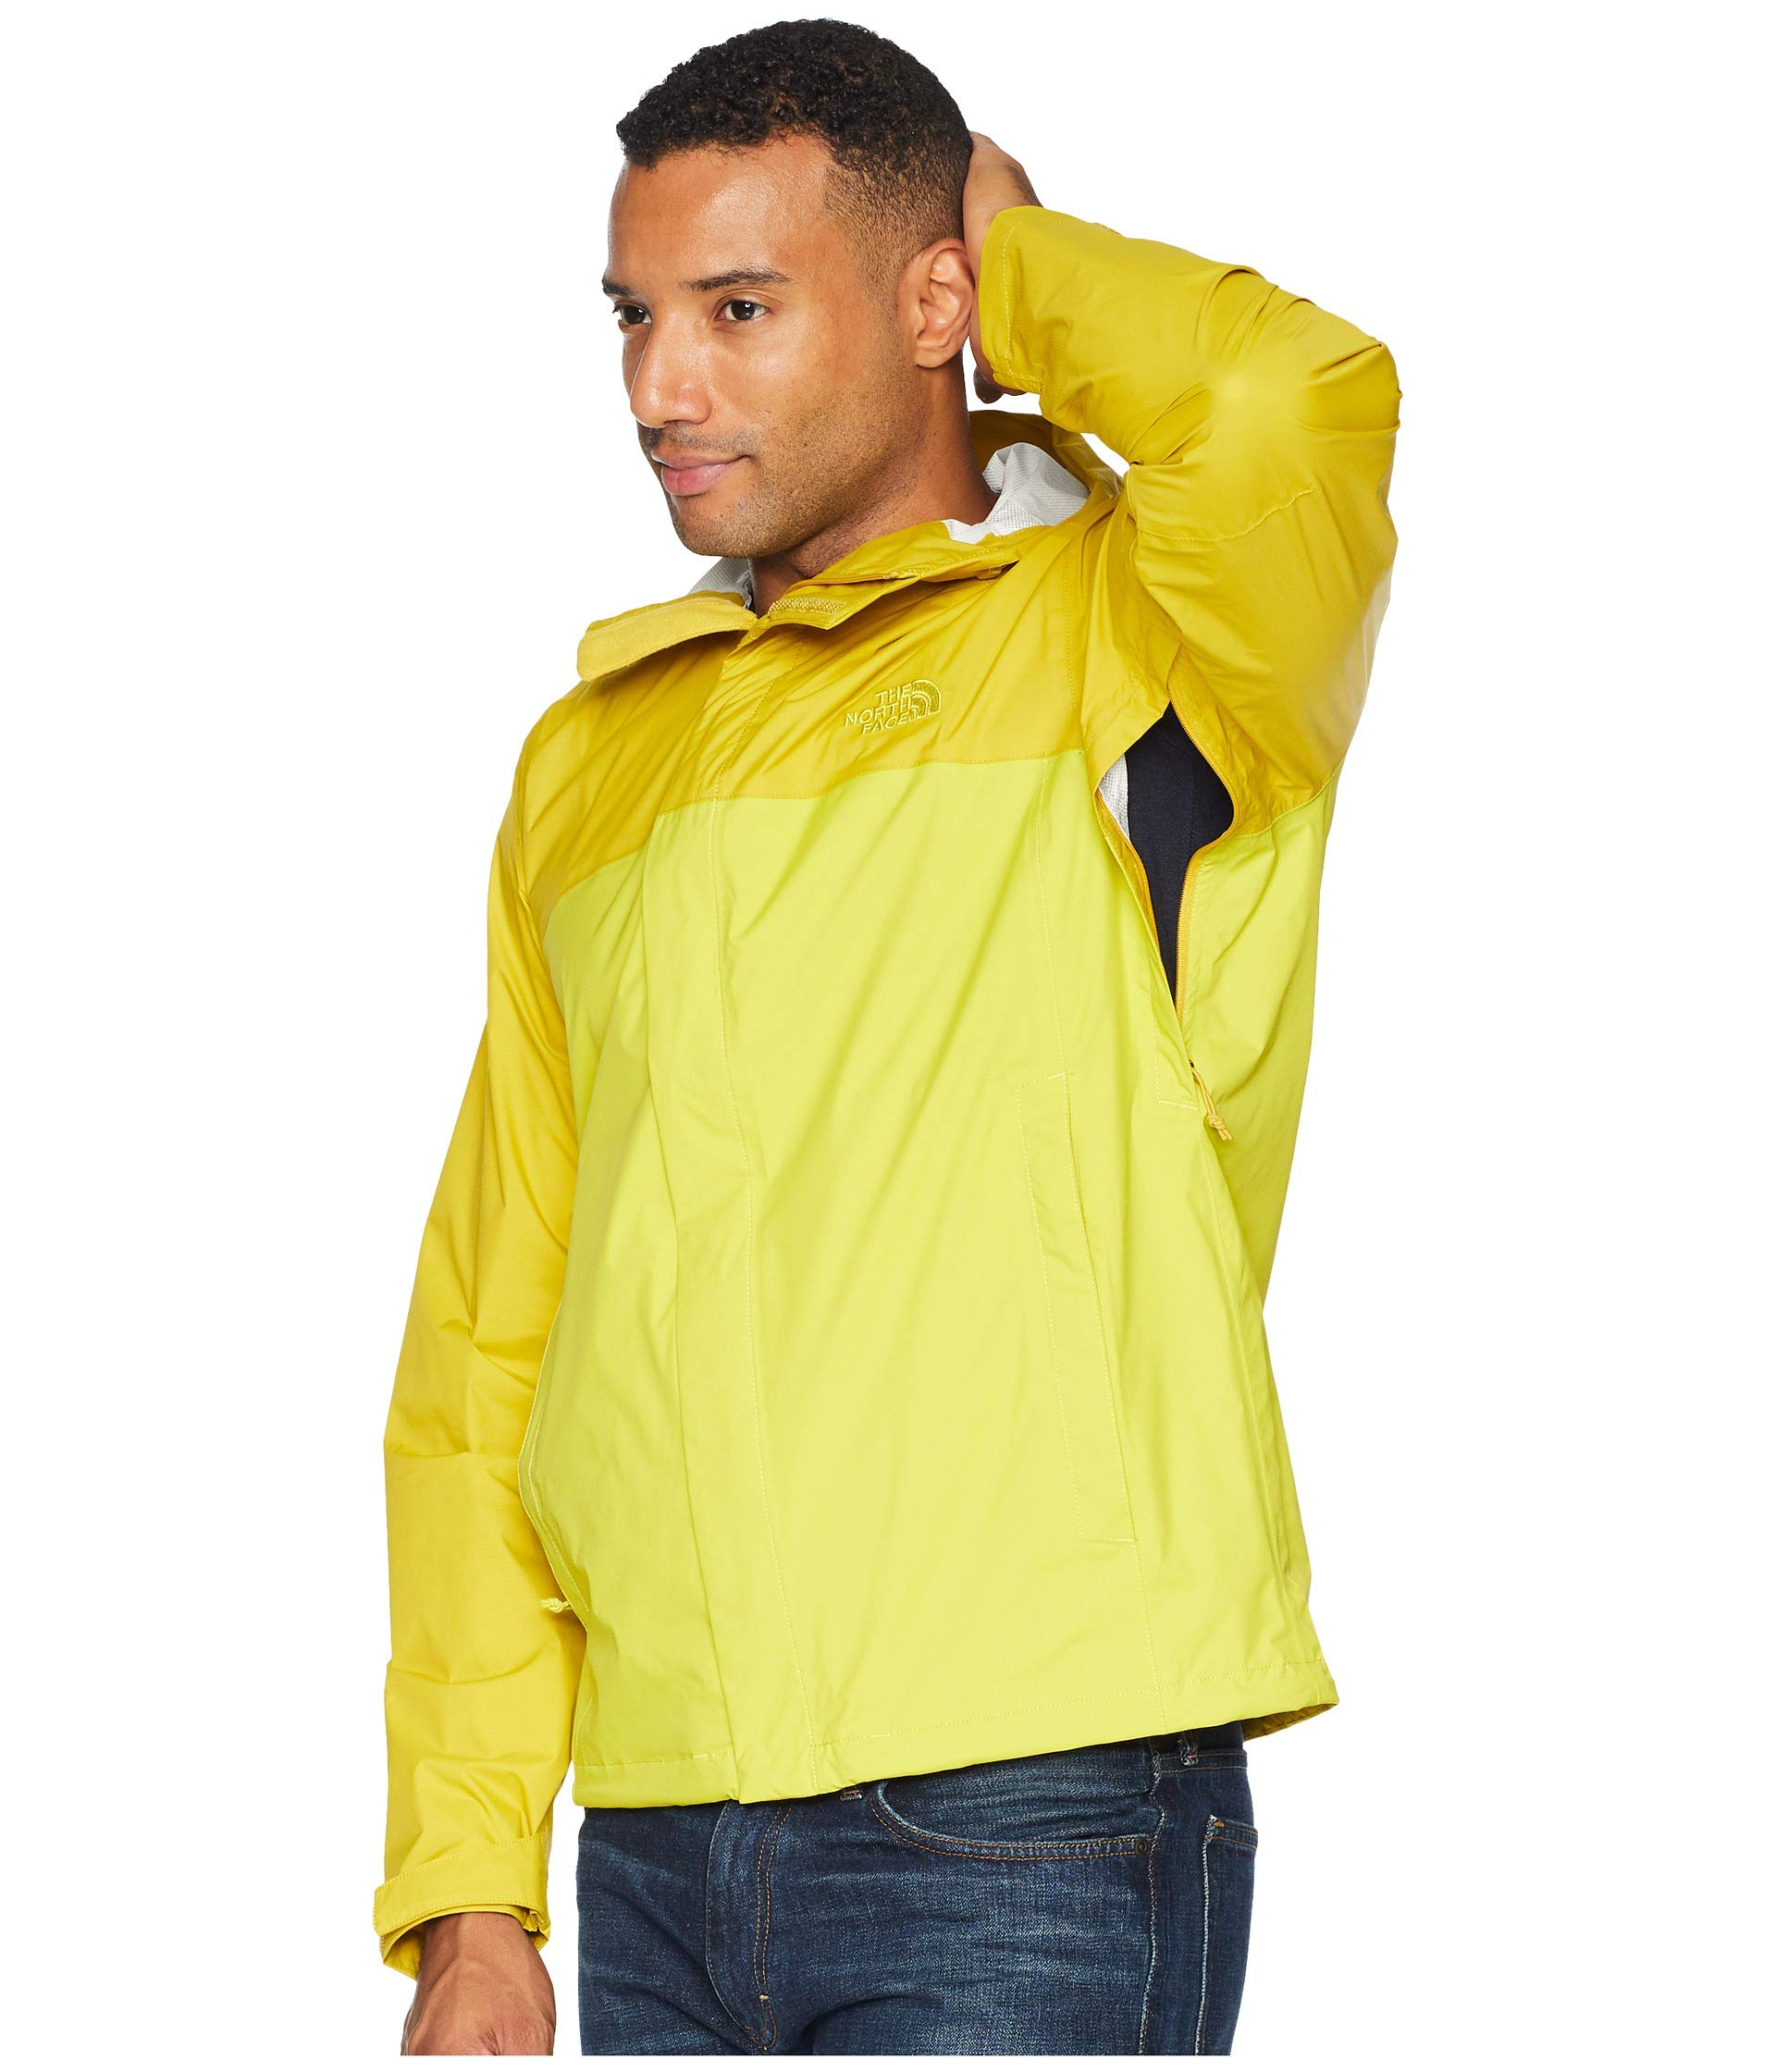 North Face The Venture Jacket Yellow 2 leopard Yellow Acid d5waqSw